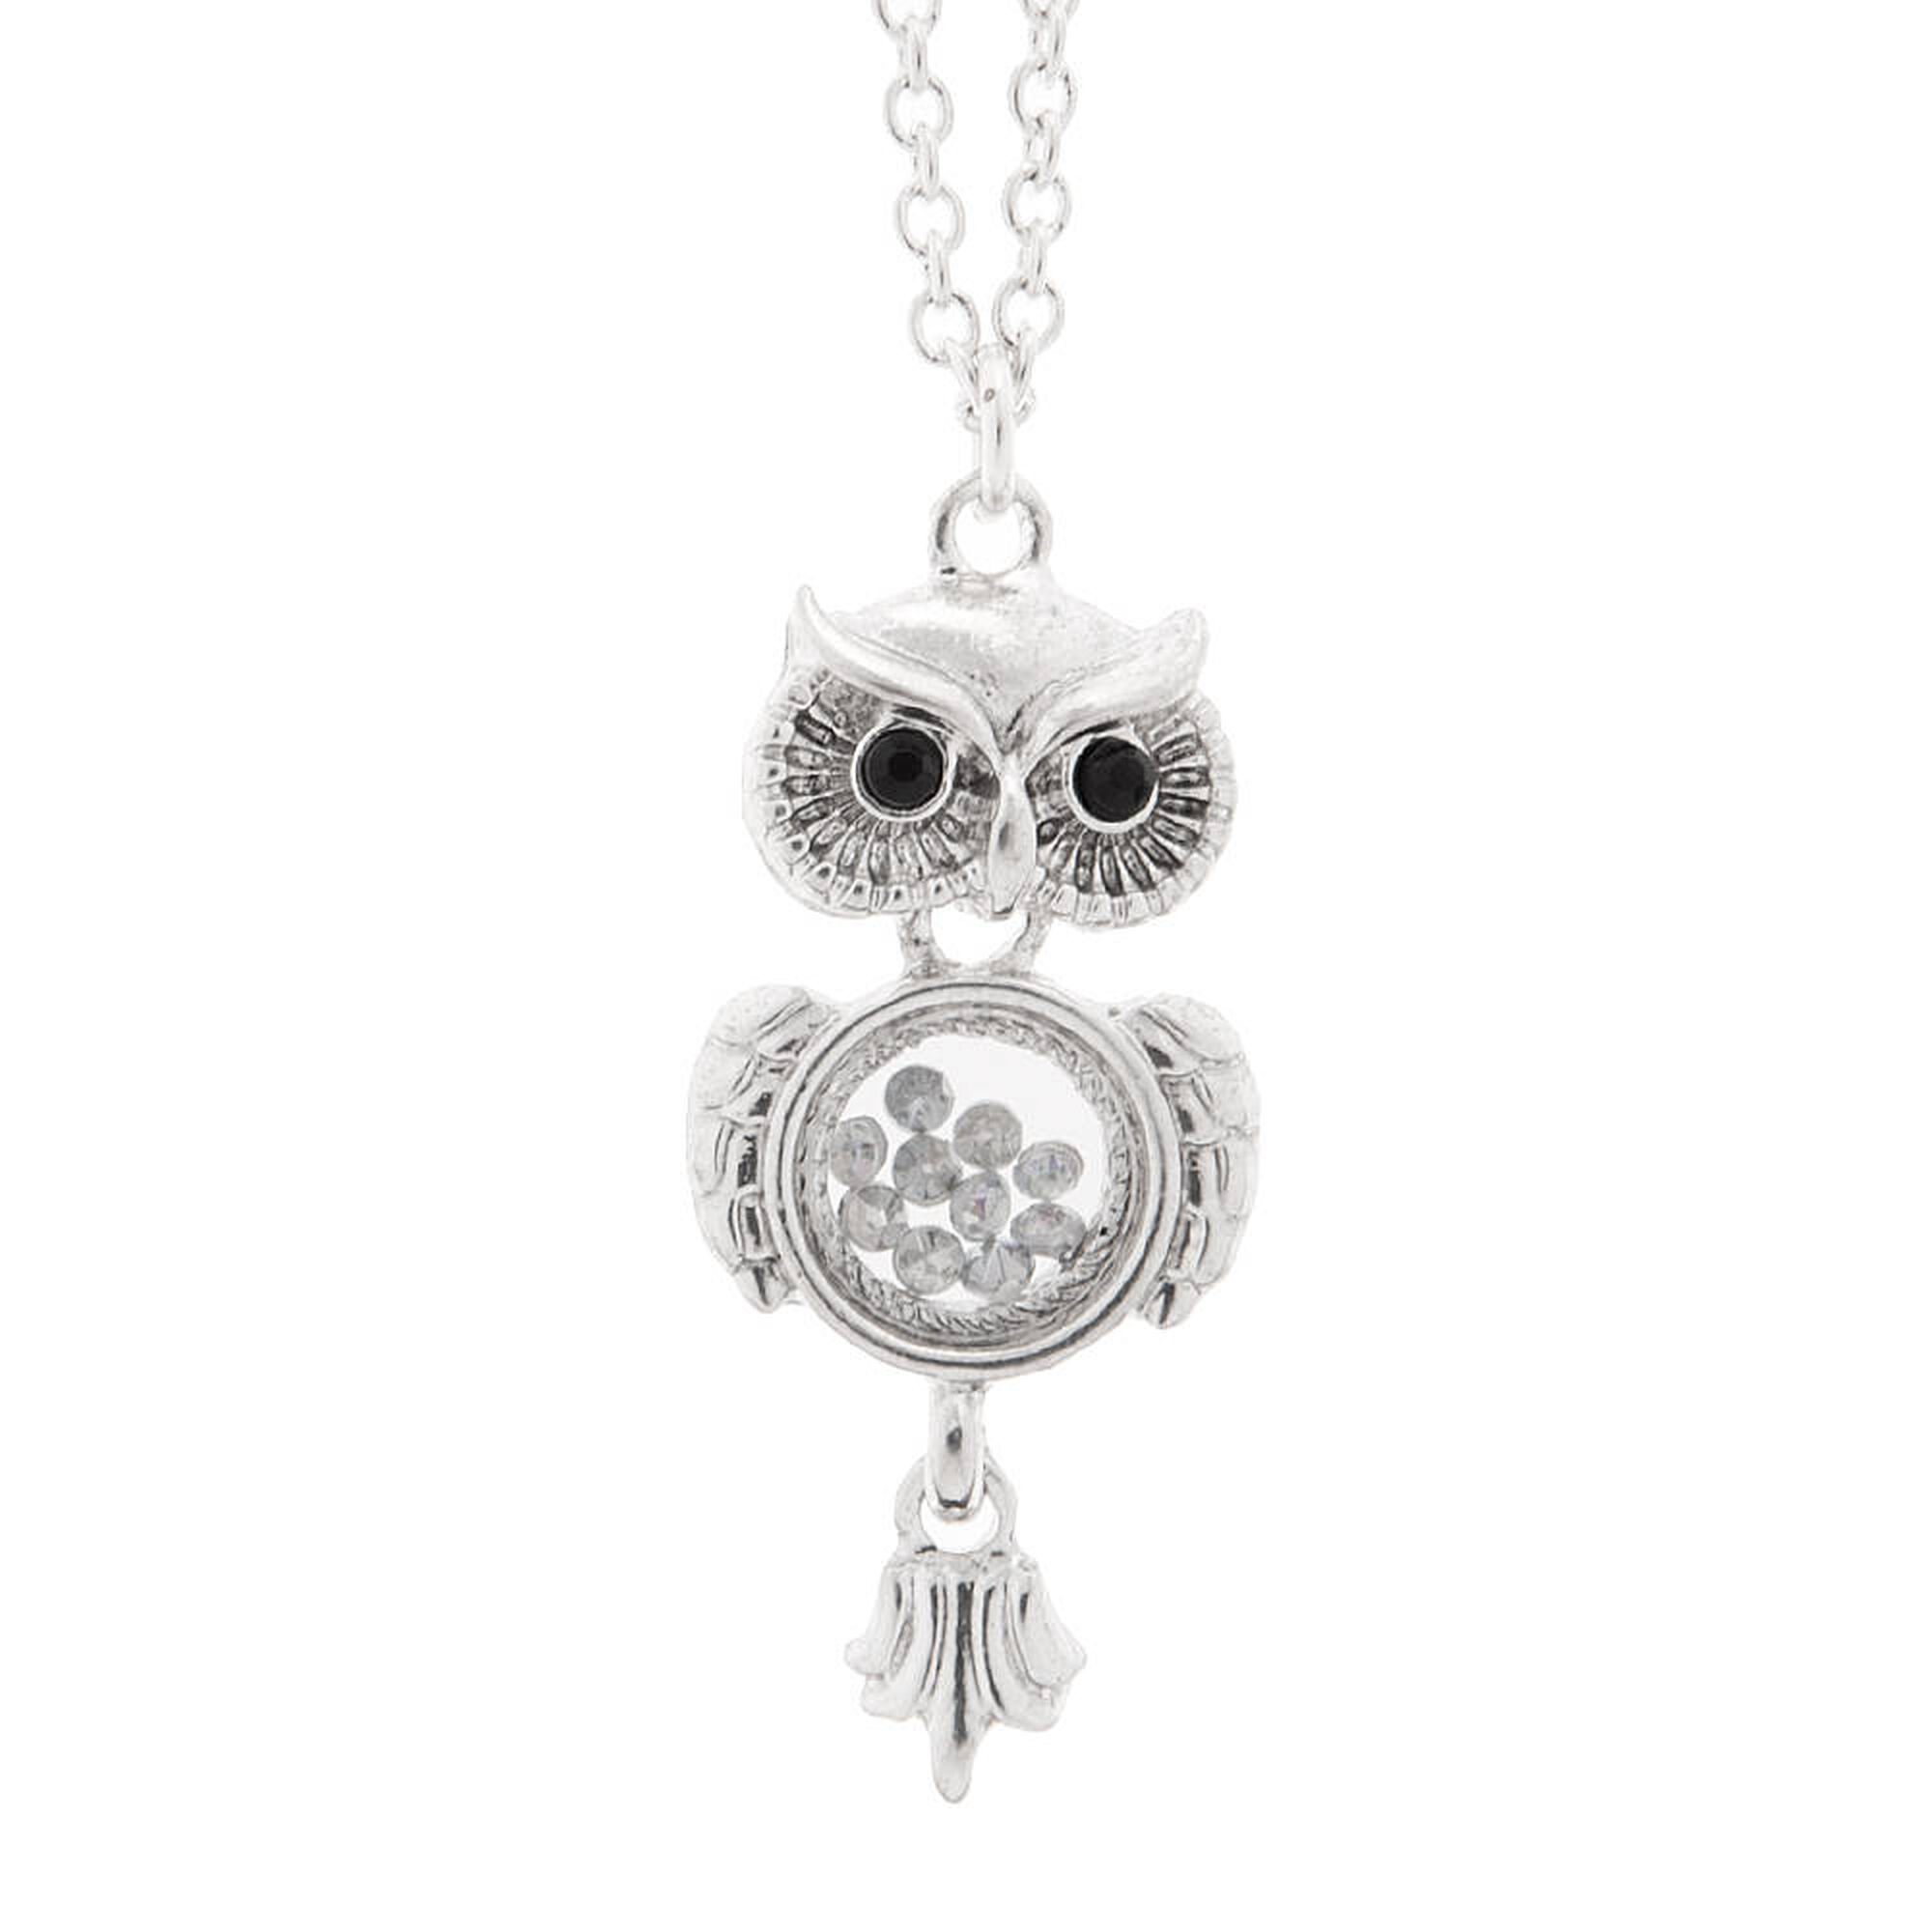 Silver owl with floating charm belly pendant necklace claires us silver owl with floating charm belly pendant necklace mozeypictures Images